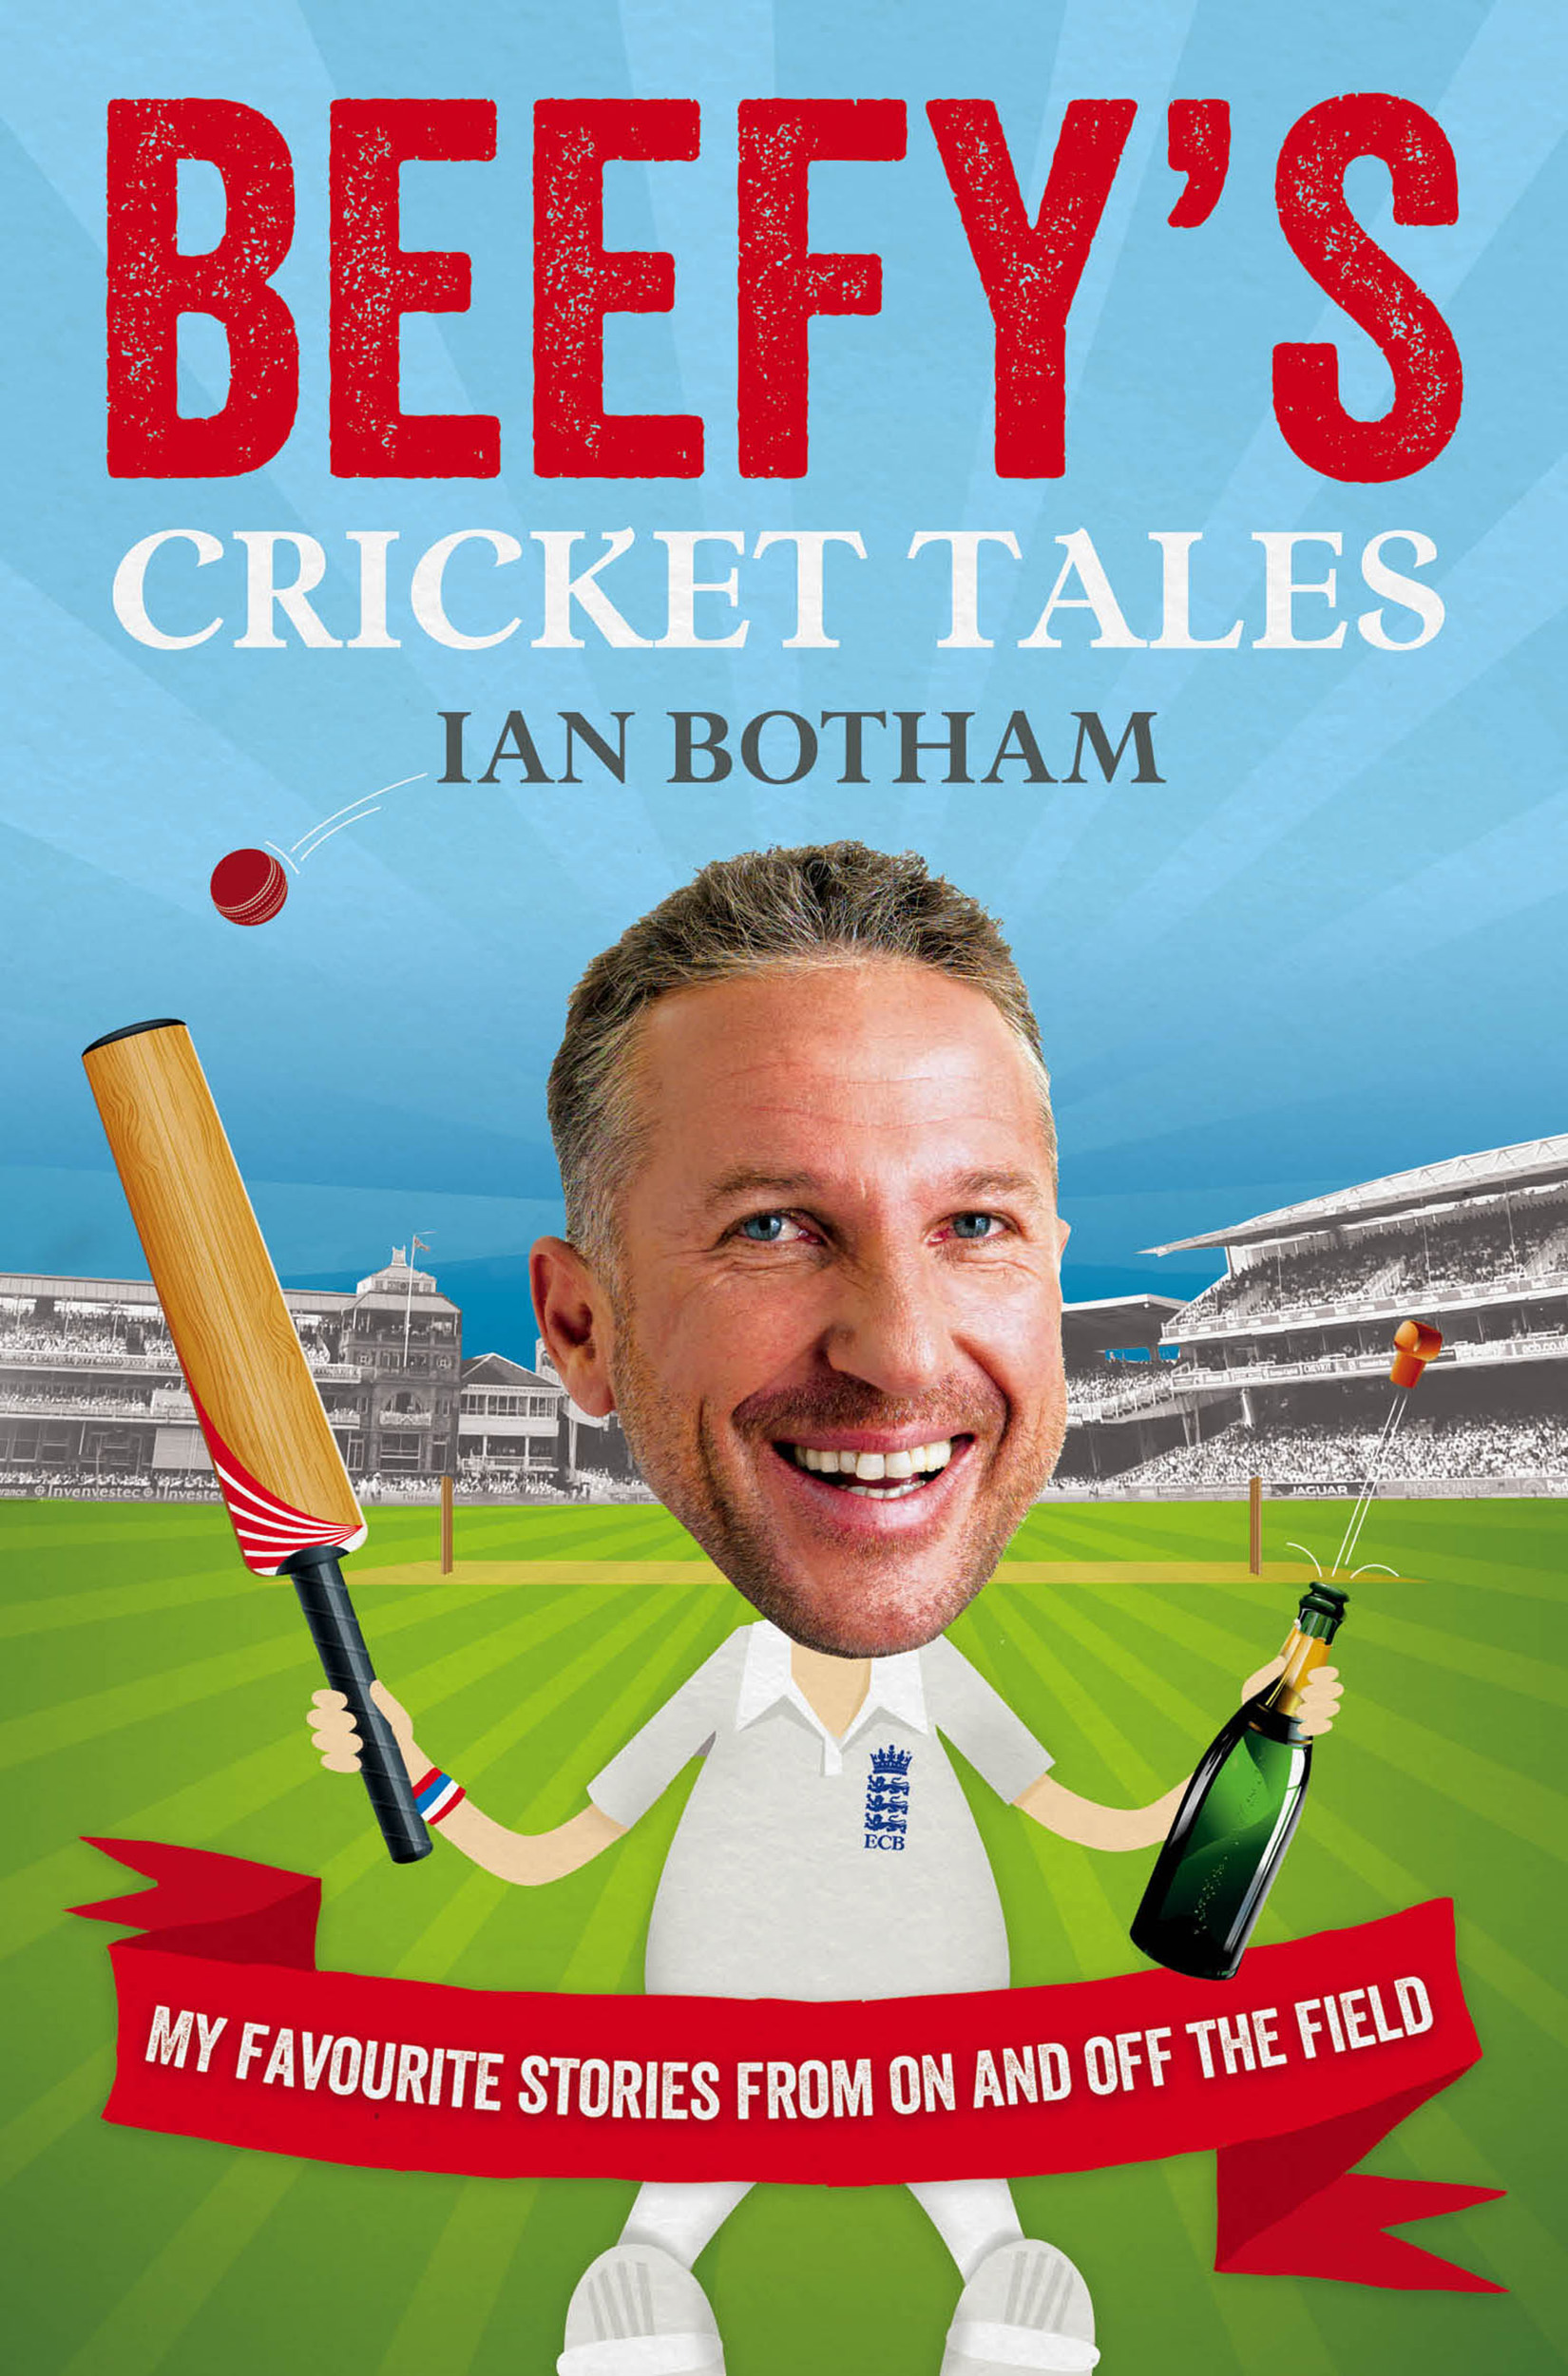 Beefy S Cricket Tales Book By Ian Botham Official border=